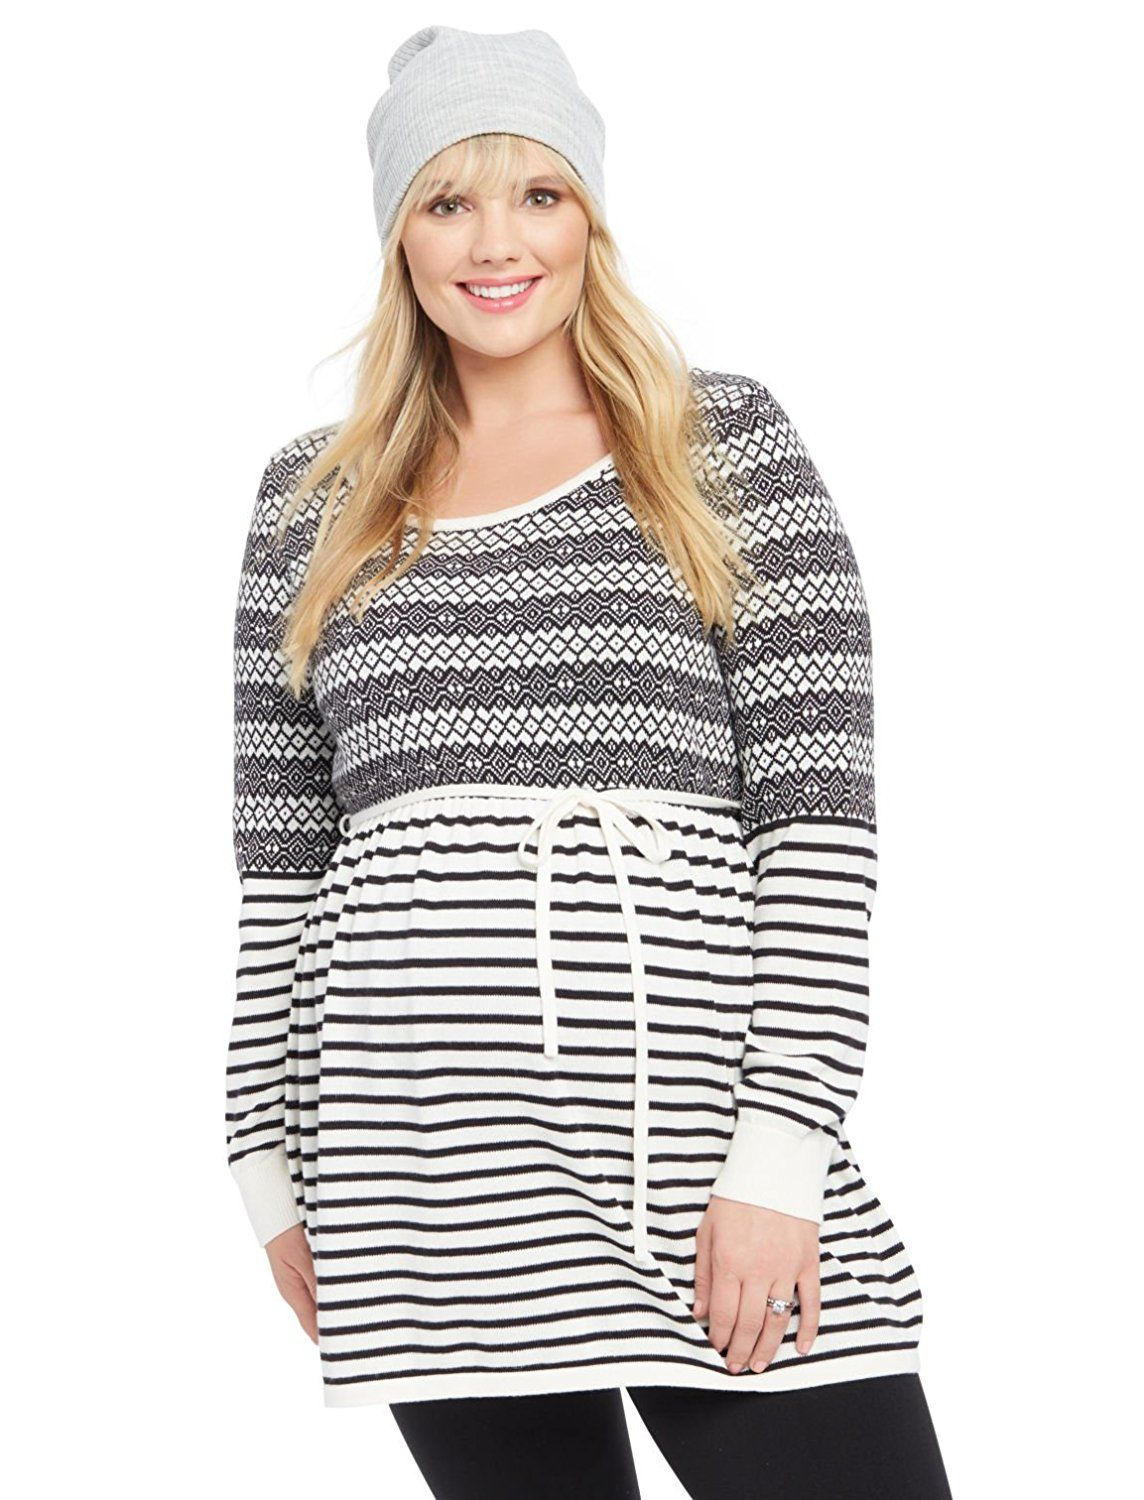 2eb29c20adfdb Motherhood Plus Size Fairisle Babydoll Maternity Sweater >>> Don't get left  behind, see this great product : Plus size maternity